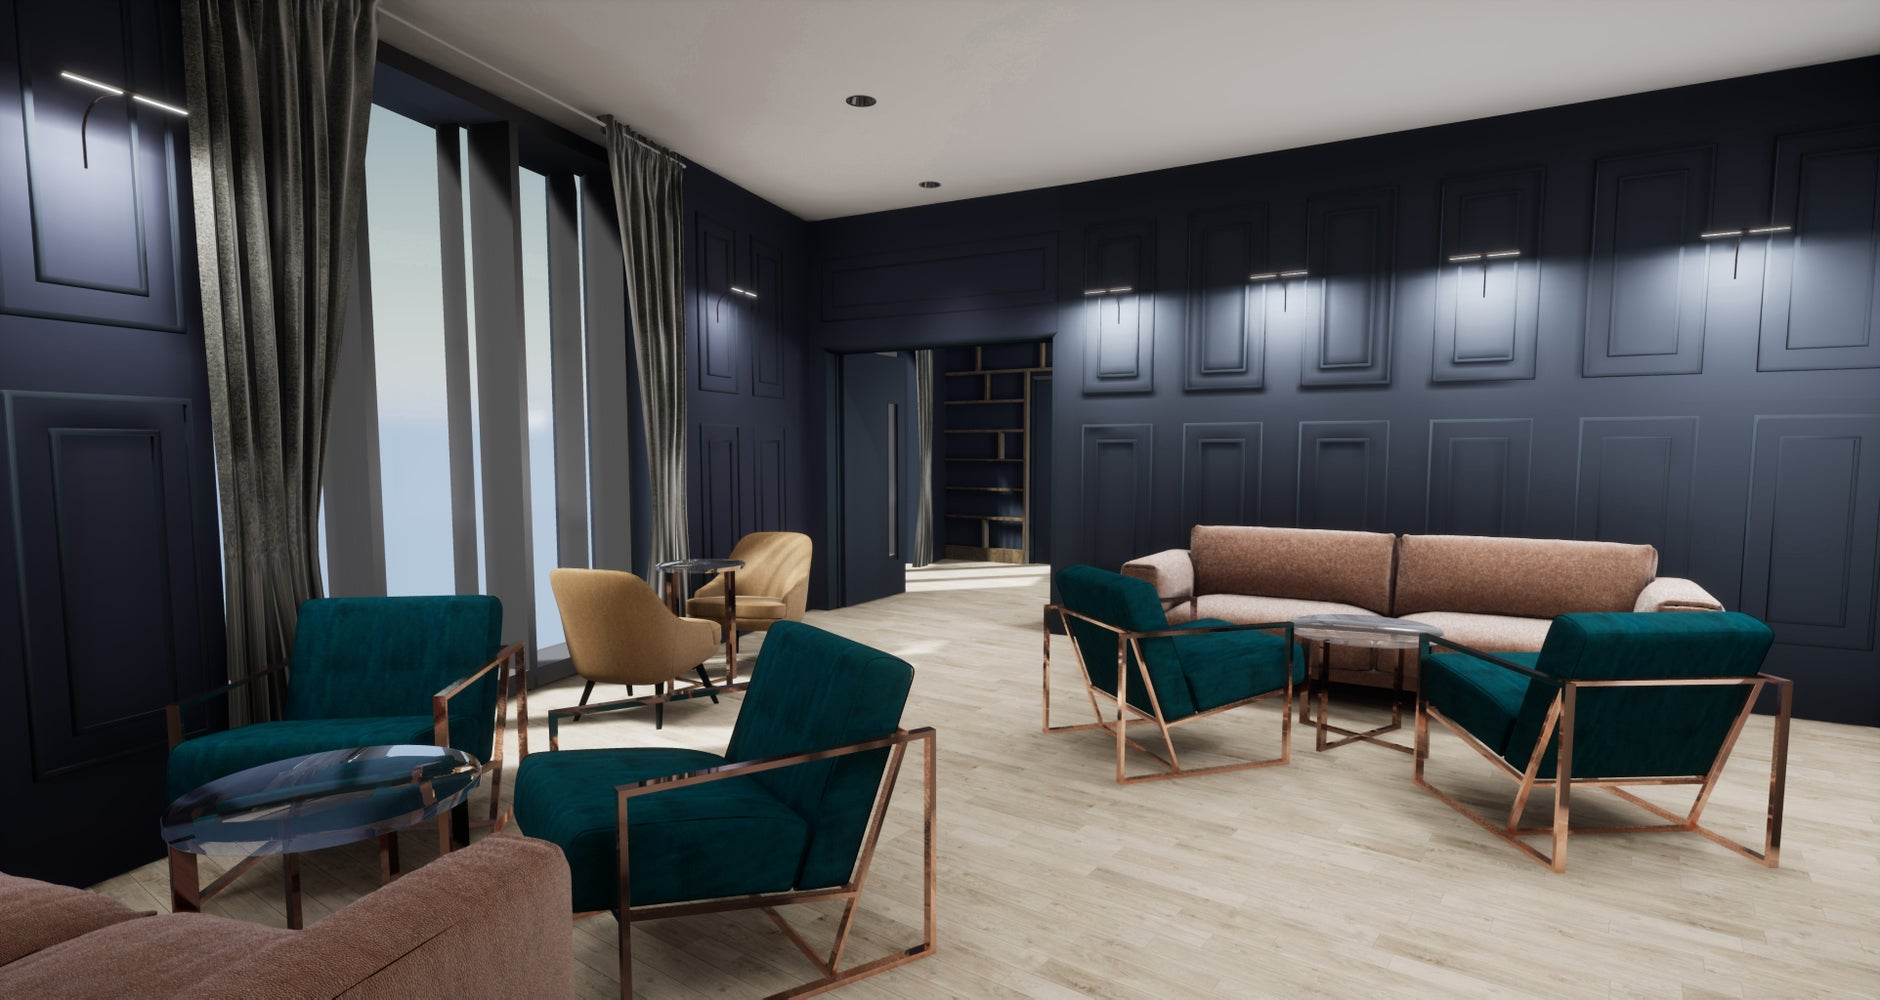 The Drawing Room at The Collective Canary Wharf.  Image courtesy of Denton Associates.